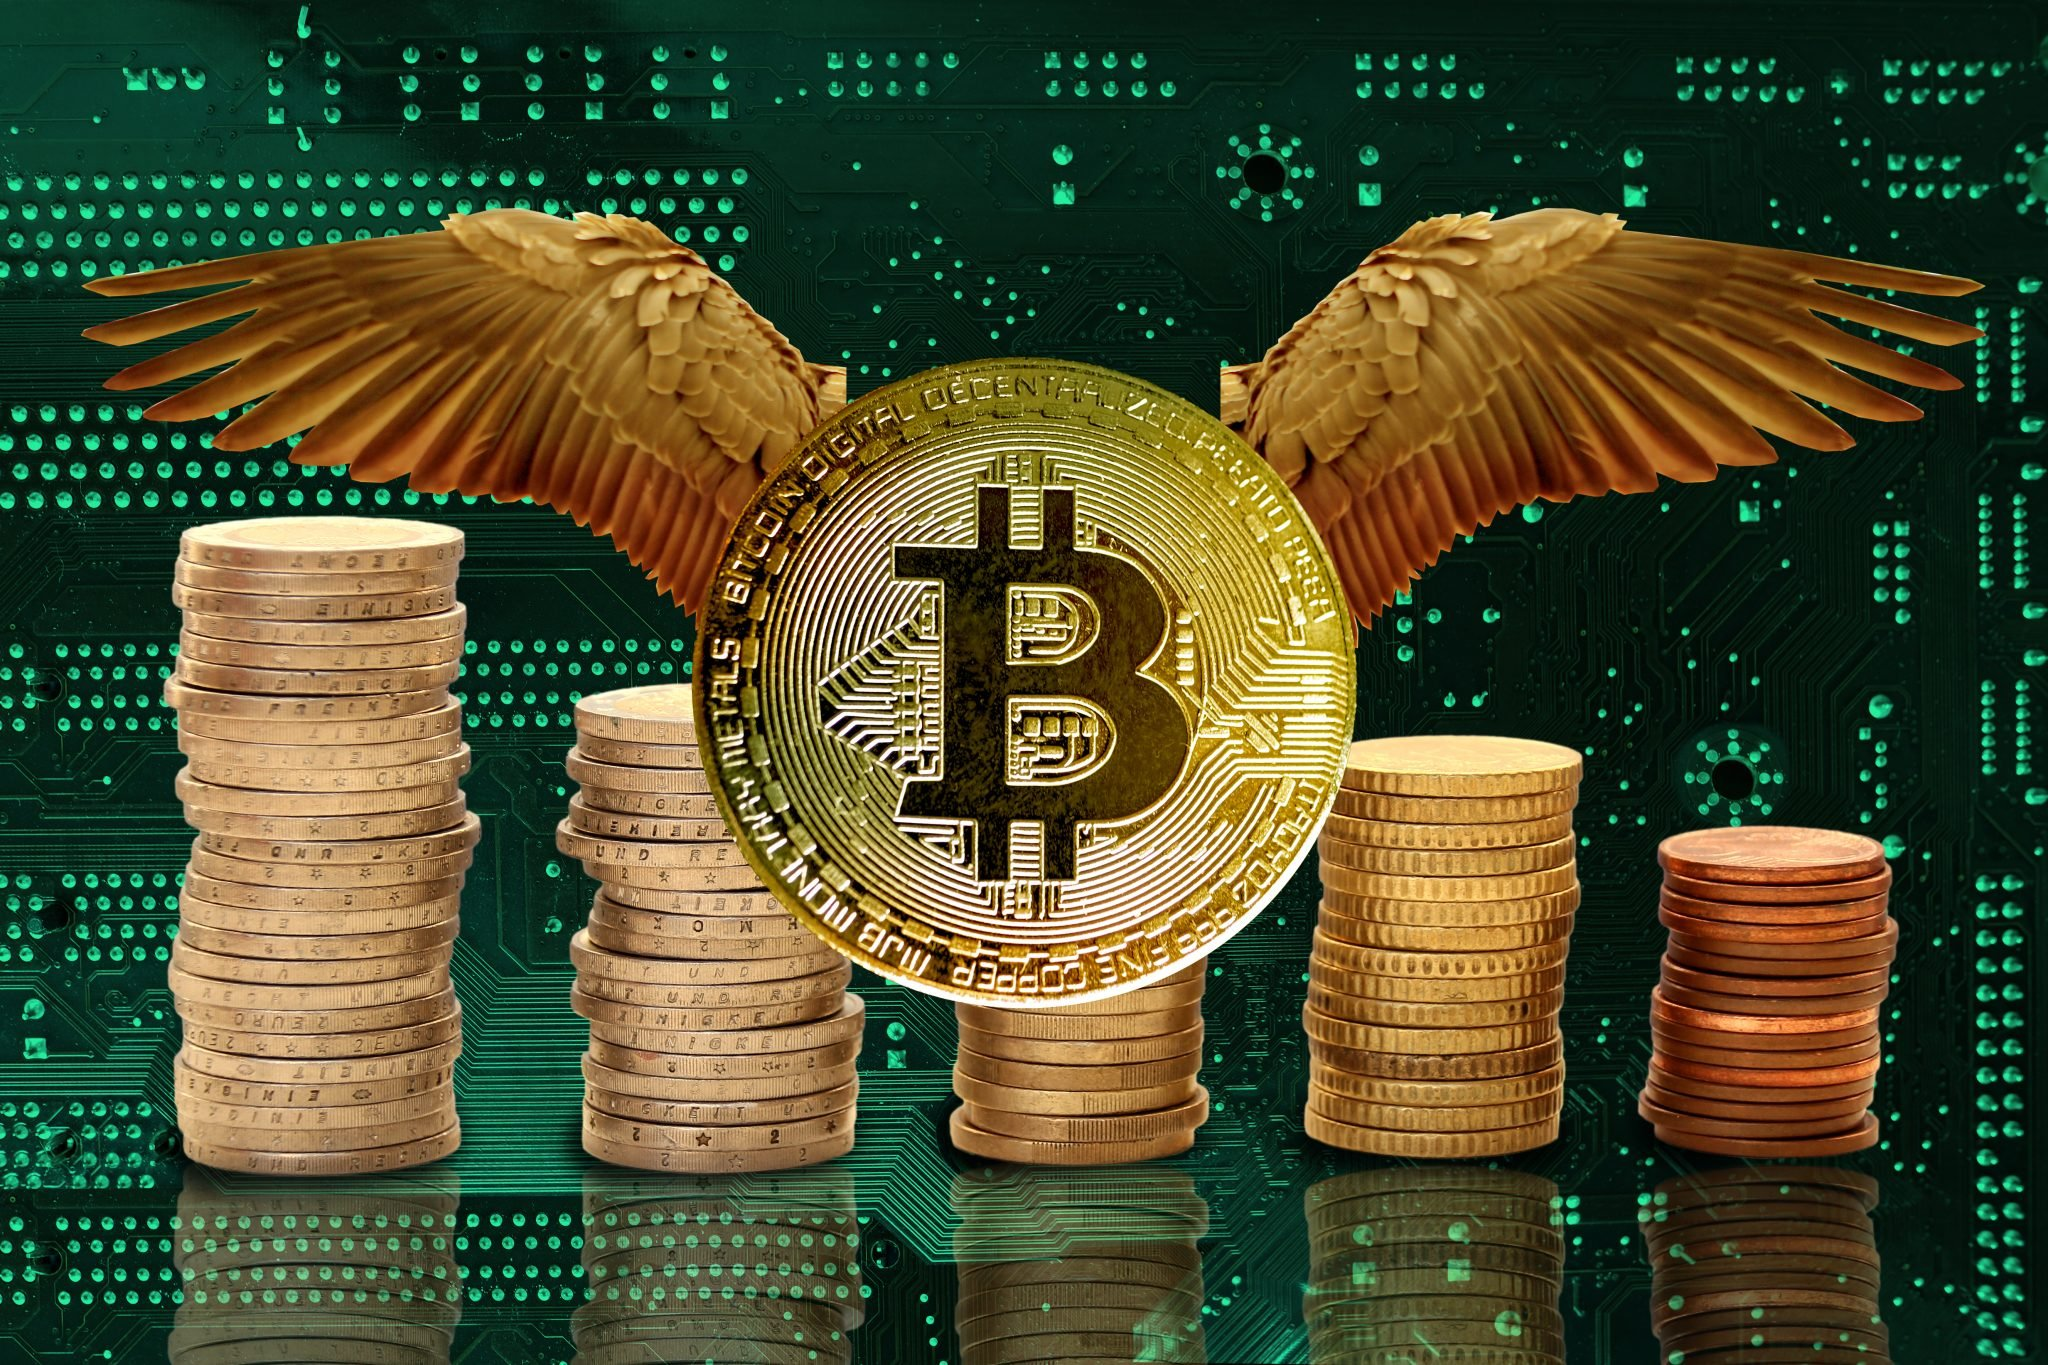 Bitcoin e-cryptocurrency with wings flies, green electronic printed circuit board, PCB with microelectronic components for technology and computer systems, modern technology concept, global business